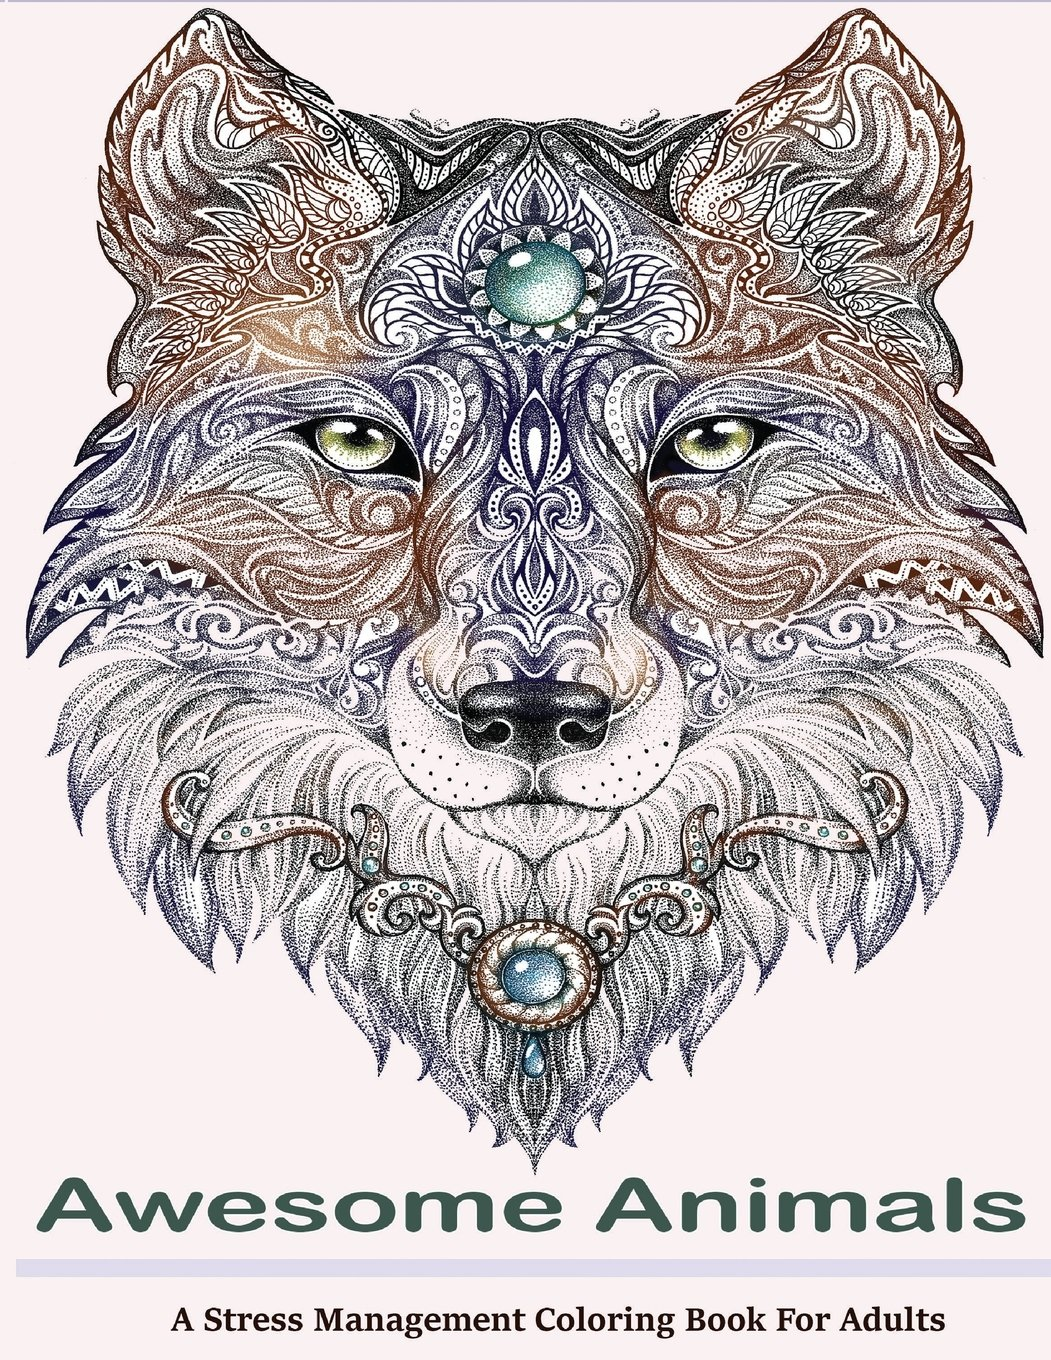 Amazon Awesome Animals Adult Coloring Books A Stress Management Book For Adults 9781515077831